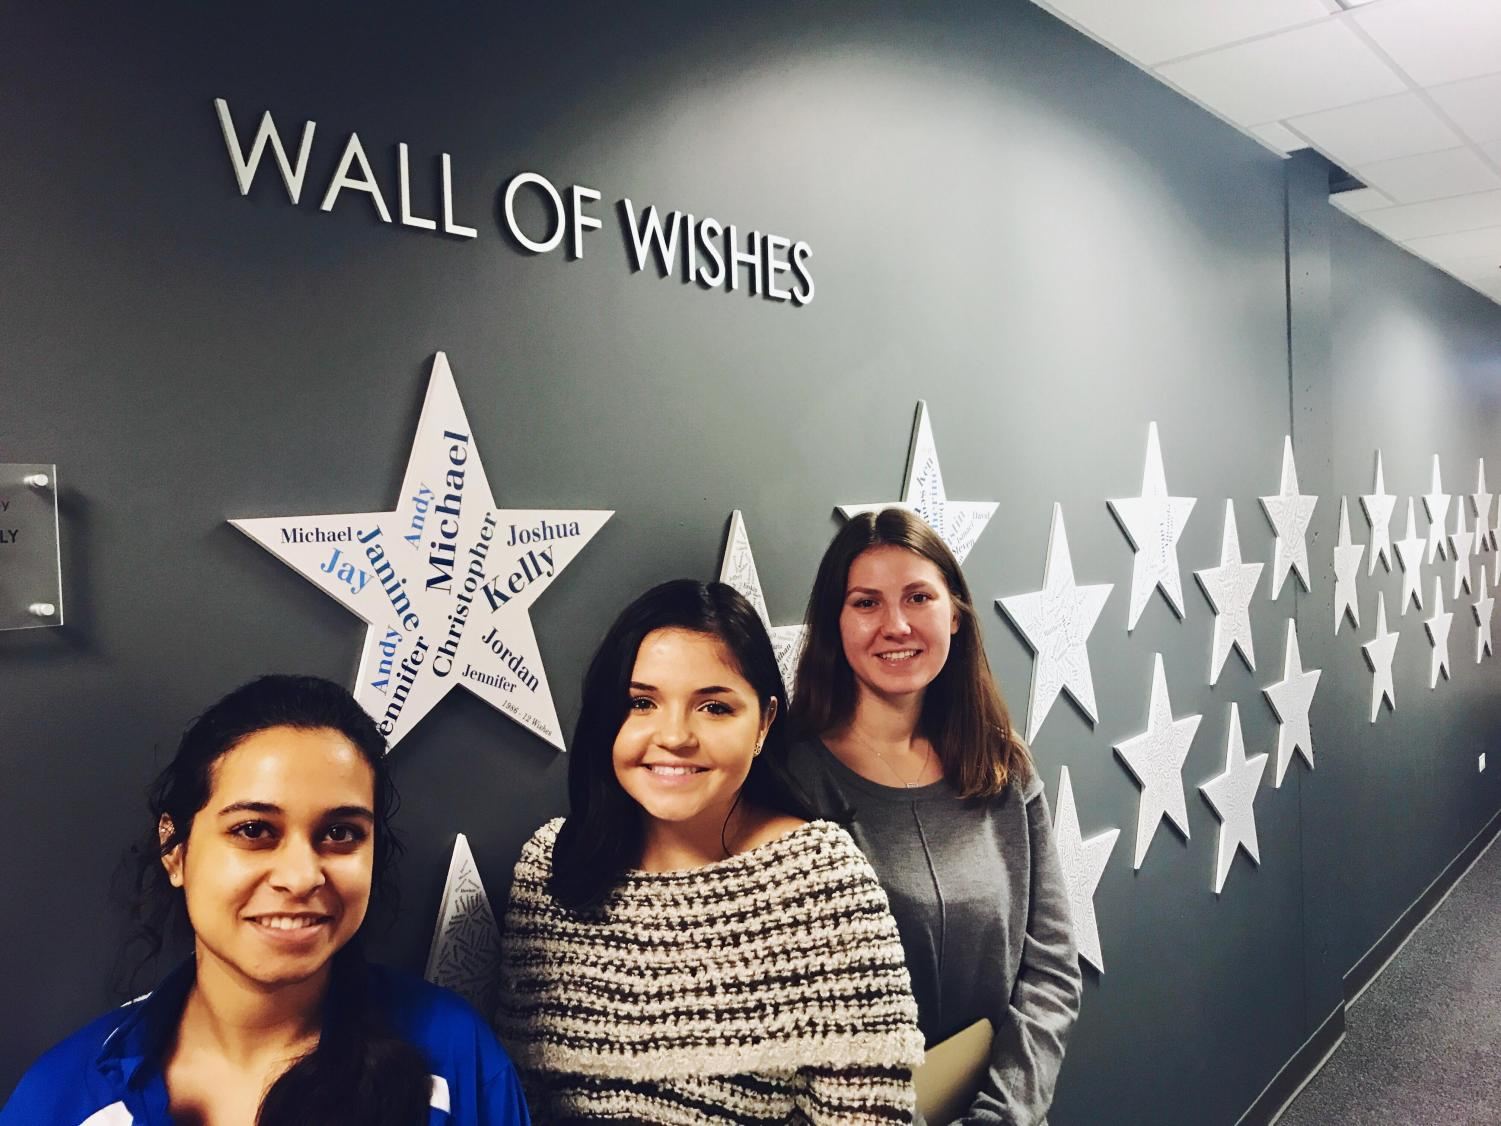 Natalia Wojnowski, Julia Bastow and Ema Khan at the Make a Wish office in Chicago.